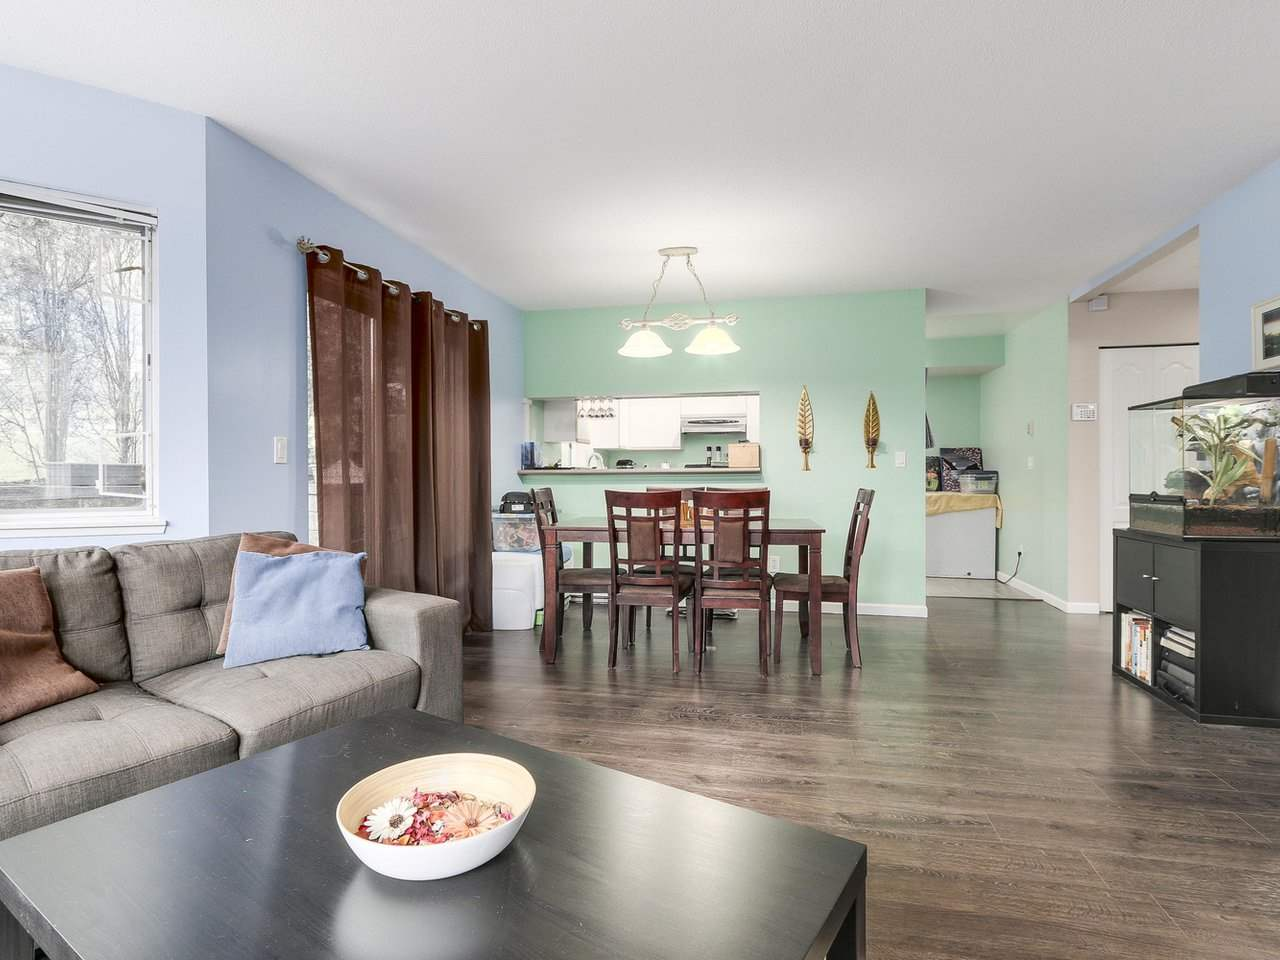 Photo 5: 127 1201 BRUNETTE Avenue in Coquitlam: Maillardville Townhouse for sale : MLS(r) # R2162178